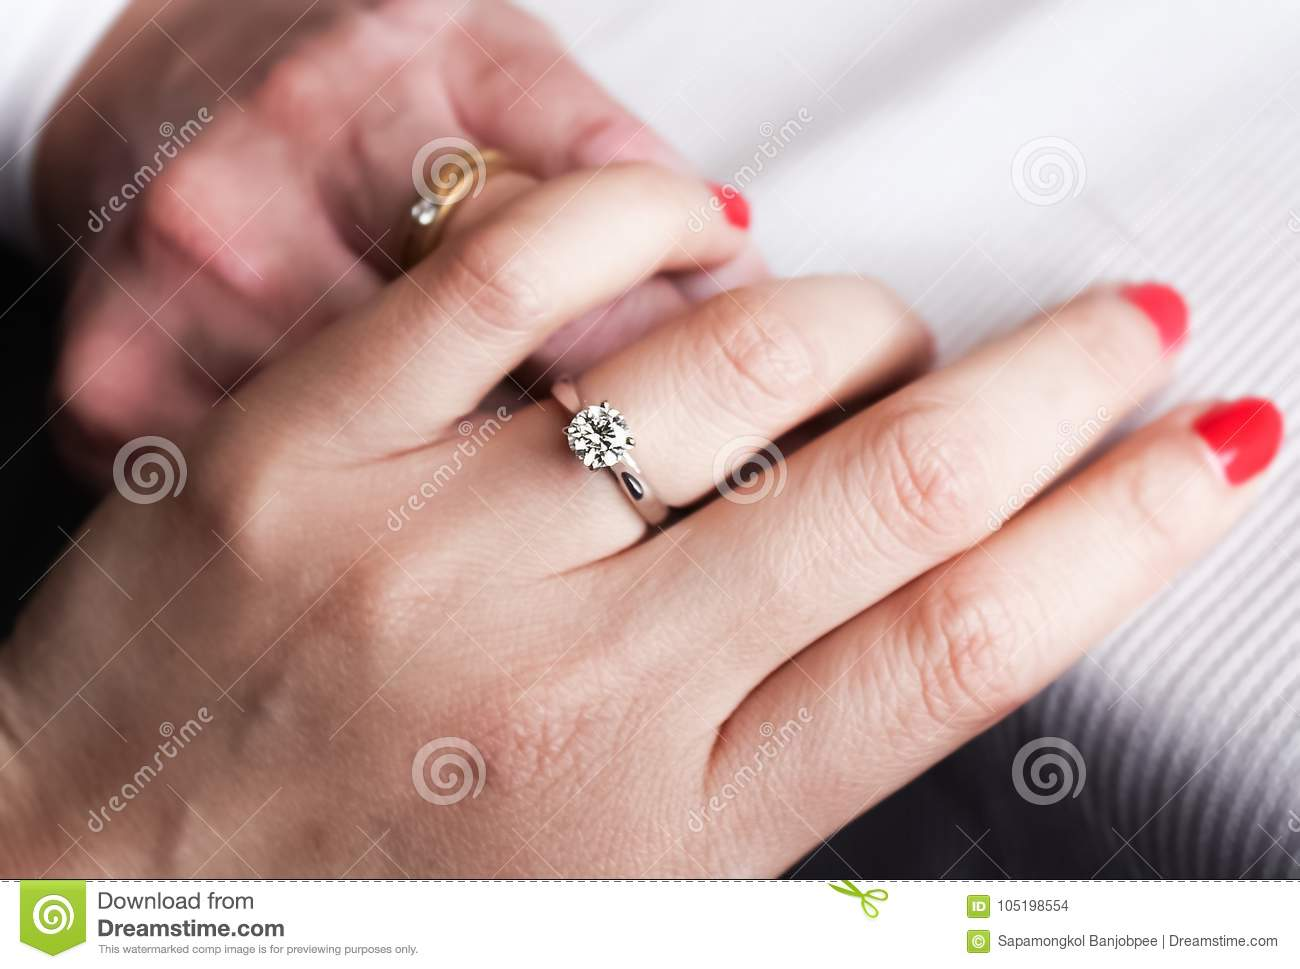 Diamond Ring On Two Hands Wedding Romantic Stock Photo - Image of ...